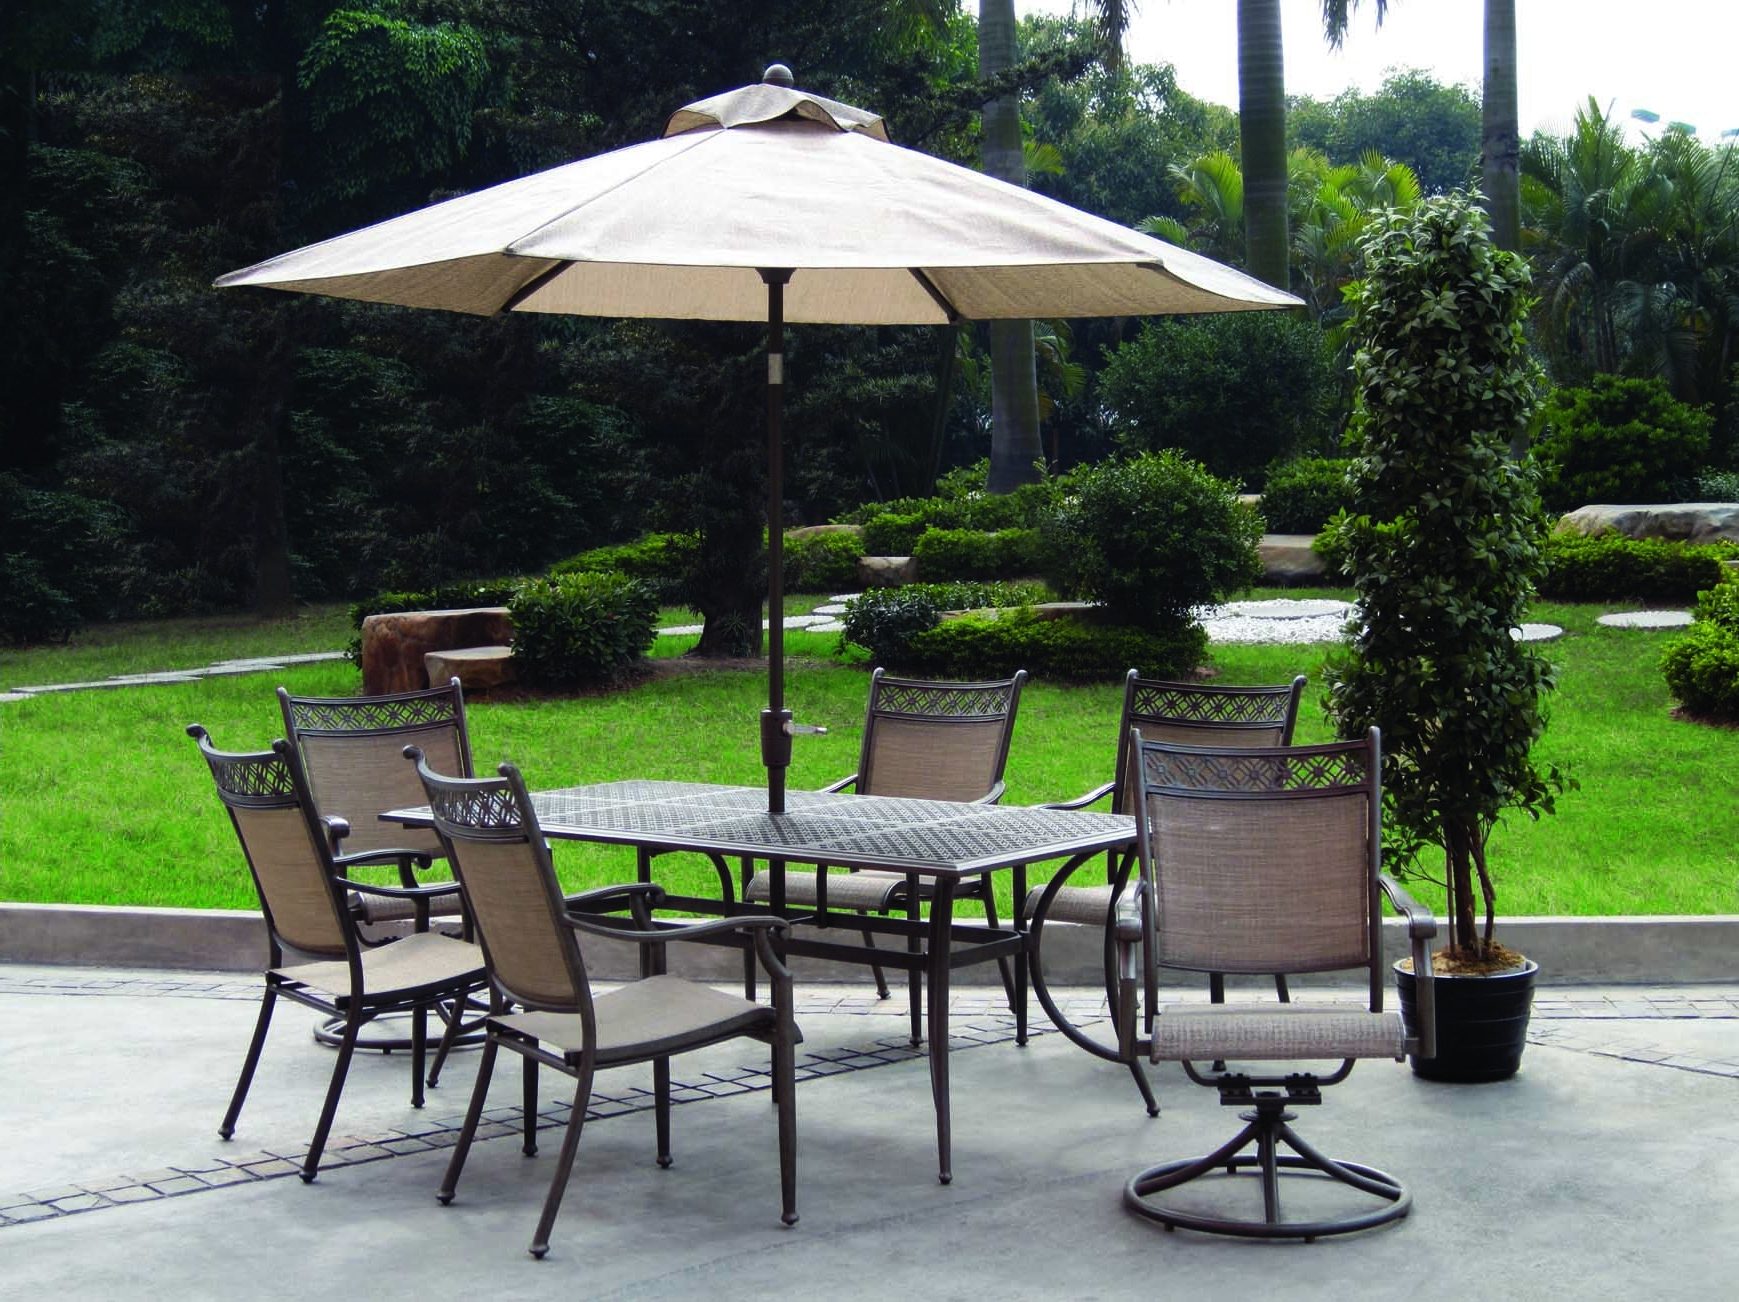 Best And Newest Patio Table And Chairs With Umbrellas Within Home Depot Outdoor Furniture Umbrellas With 2 Swivel Chair Pine (View 5 of 20)